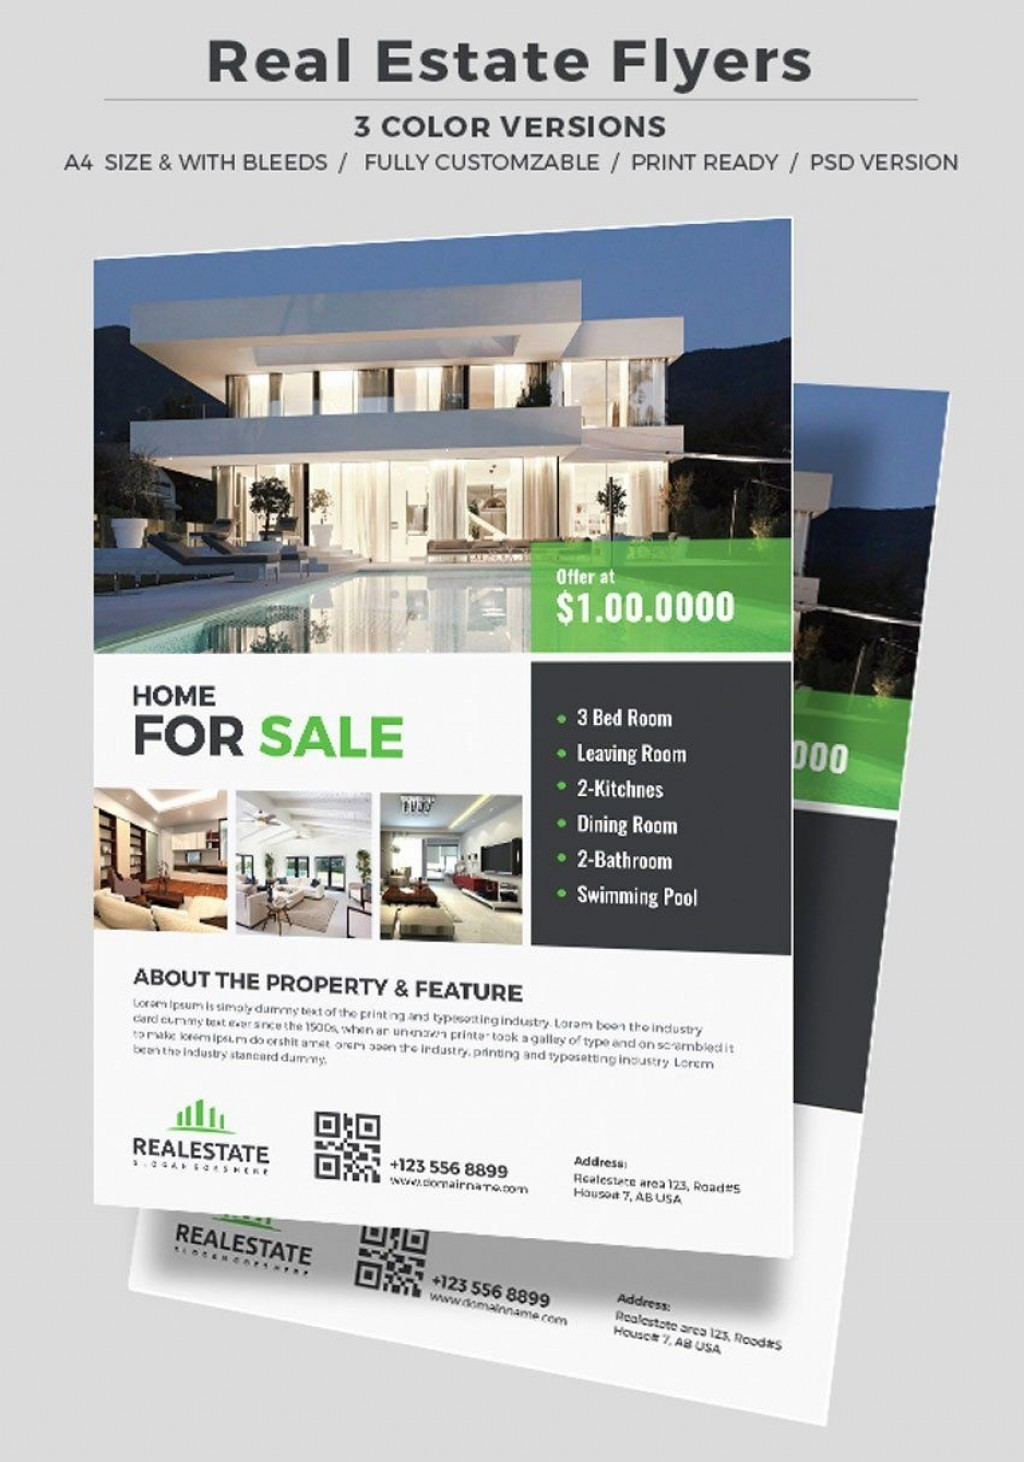 002 Unforgettable Real Estate Advertising Template Photo  Ad Newspaper ClassifiedLarge